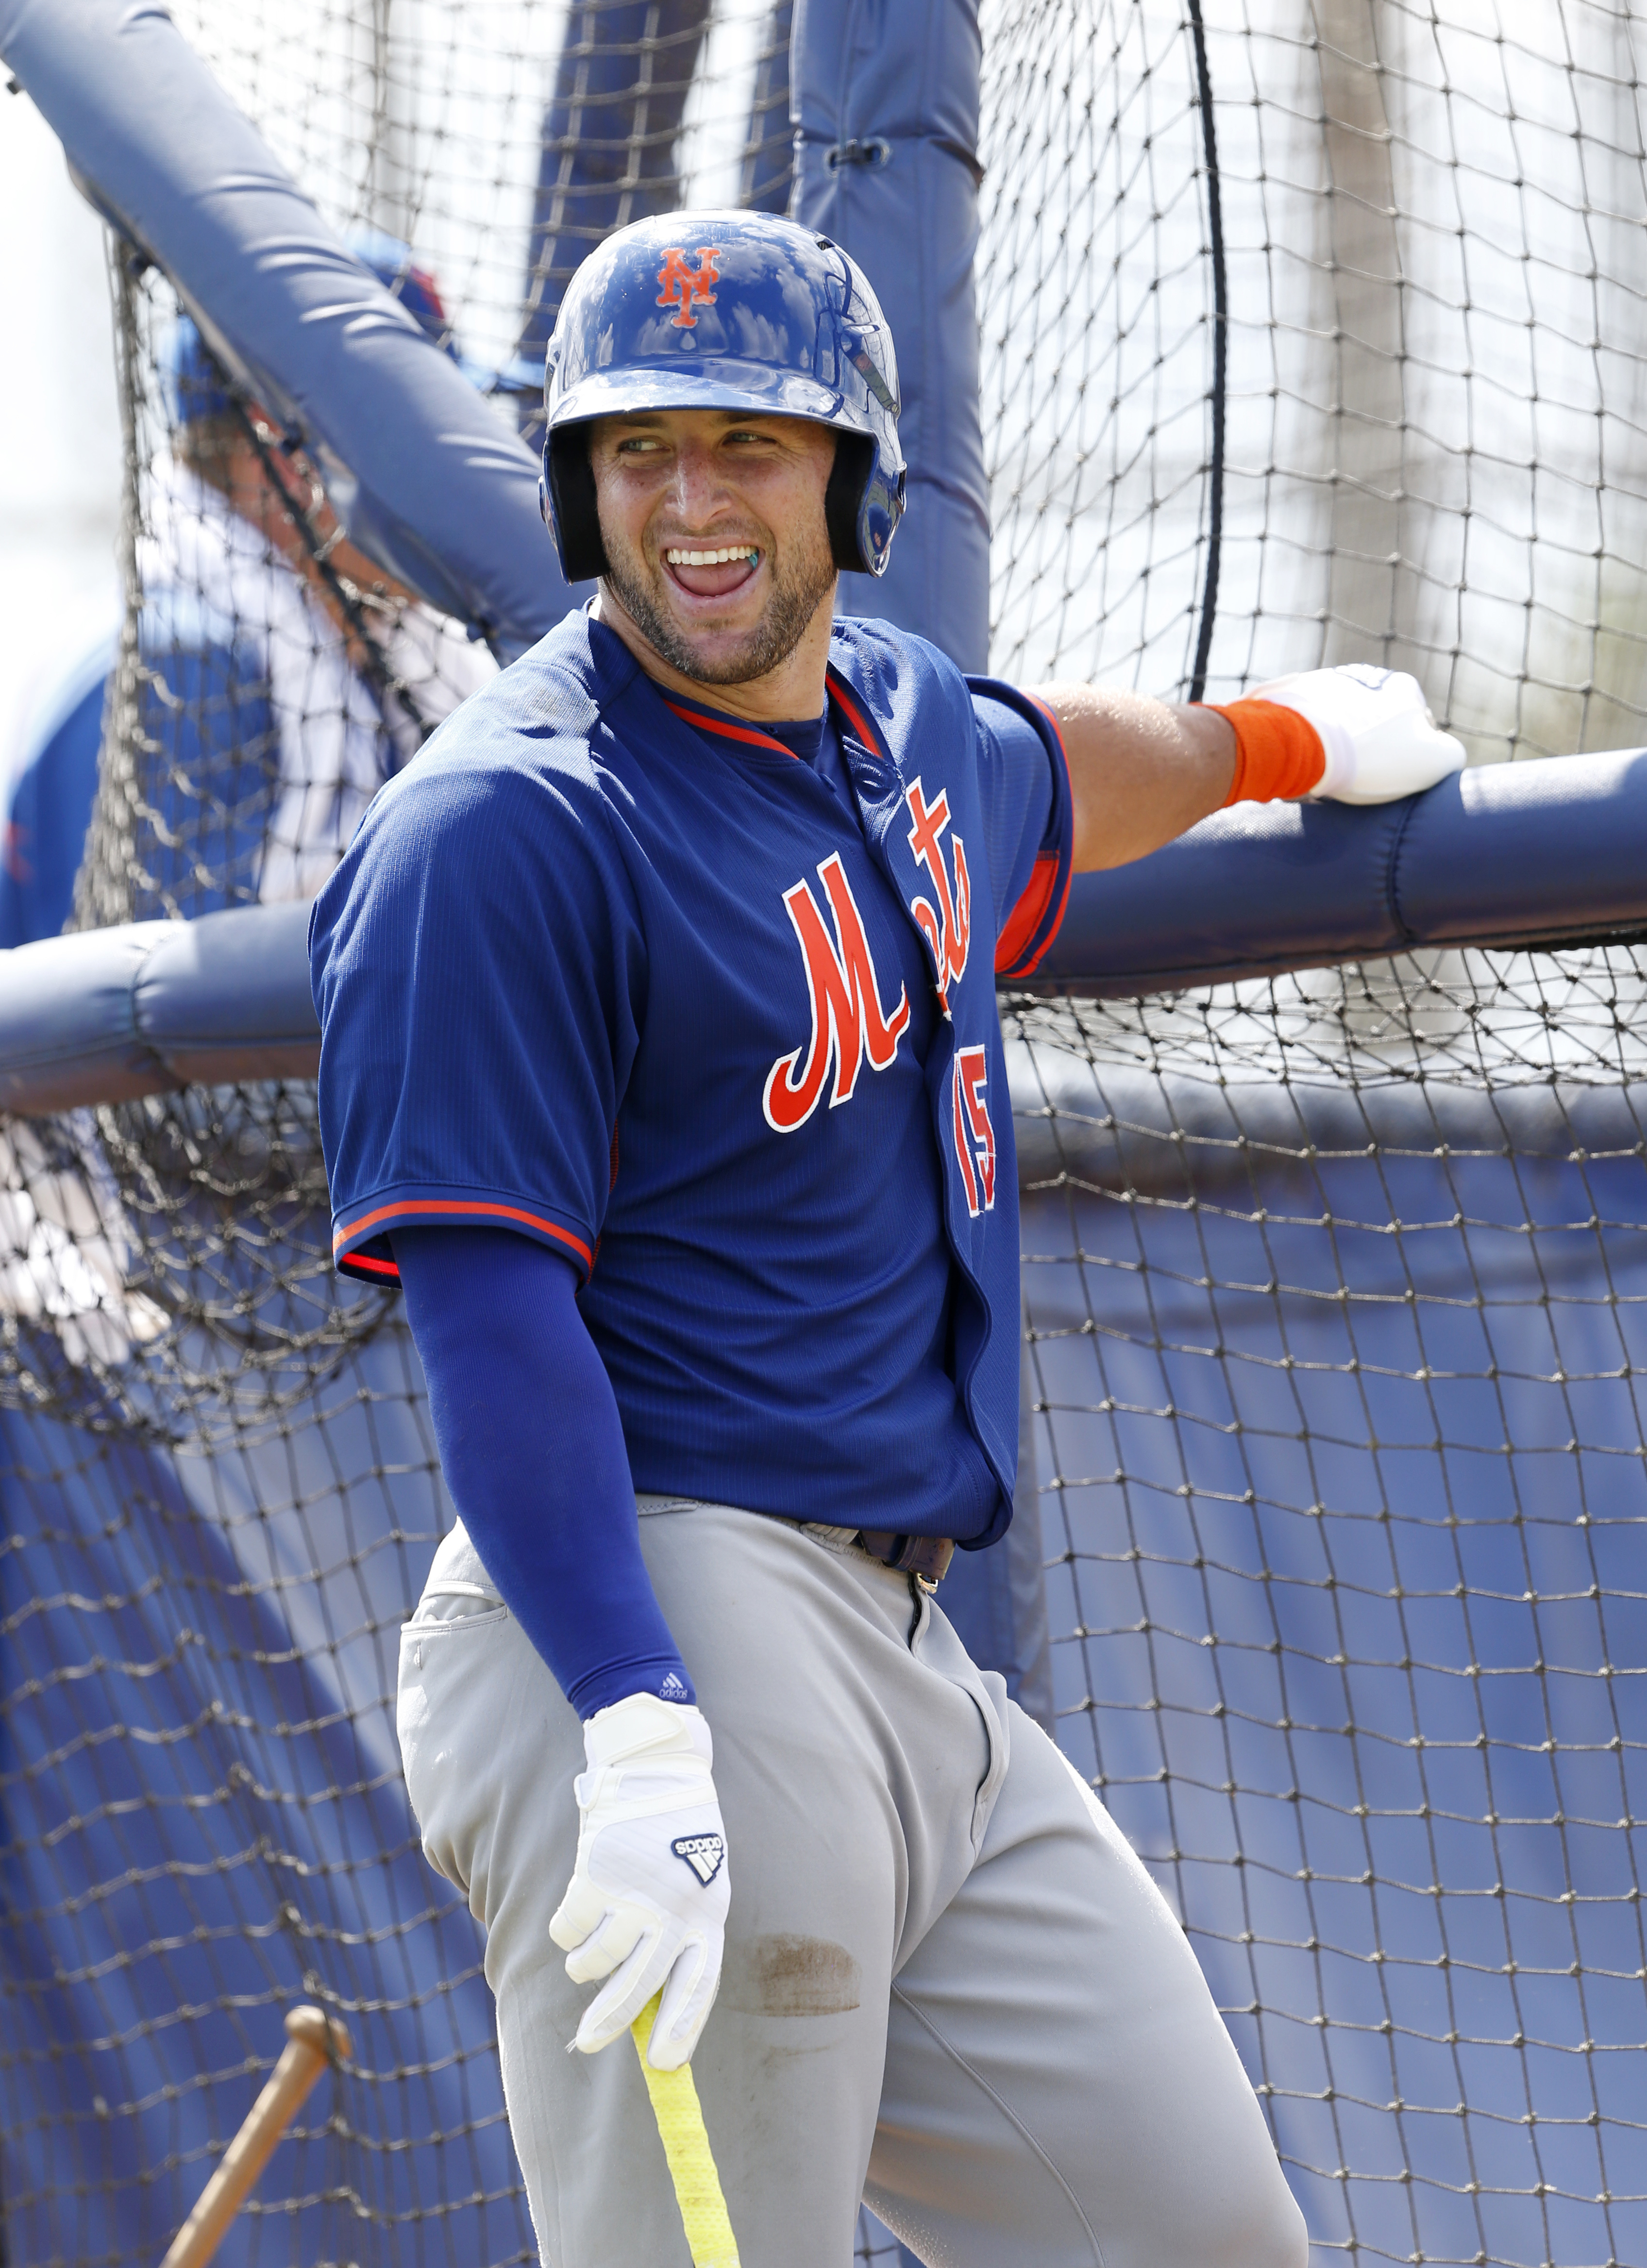 Tim Tebow laughs as he waits his turn for batting practice, Tuesday, Sept. 20, 2016, in Port St. Lucie, Fla. The 2007 Heisman Trophy winner and former NFL quarterback practiced at the New York Mets' complex during his second workout as part of their instr